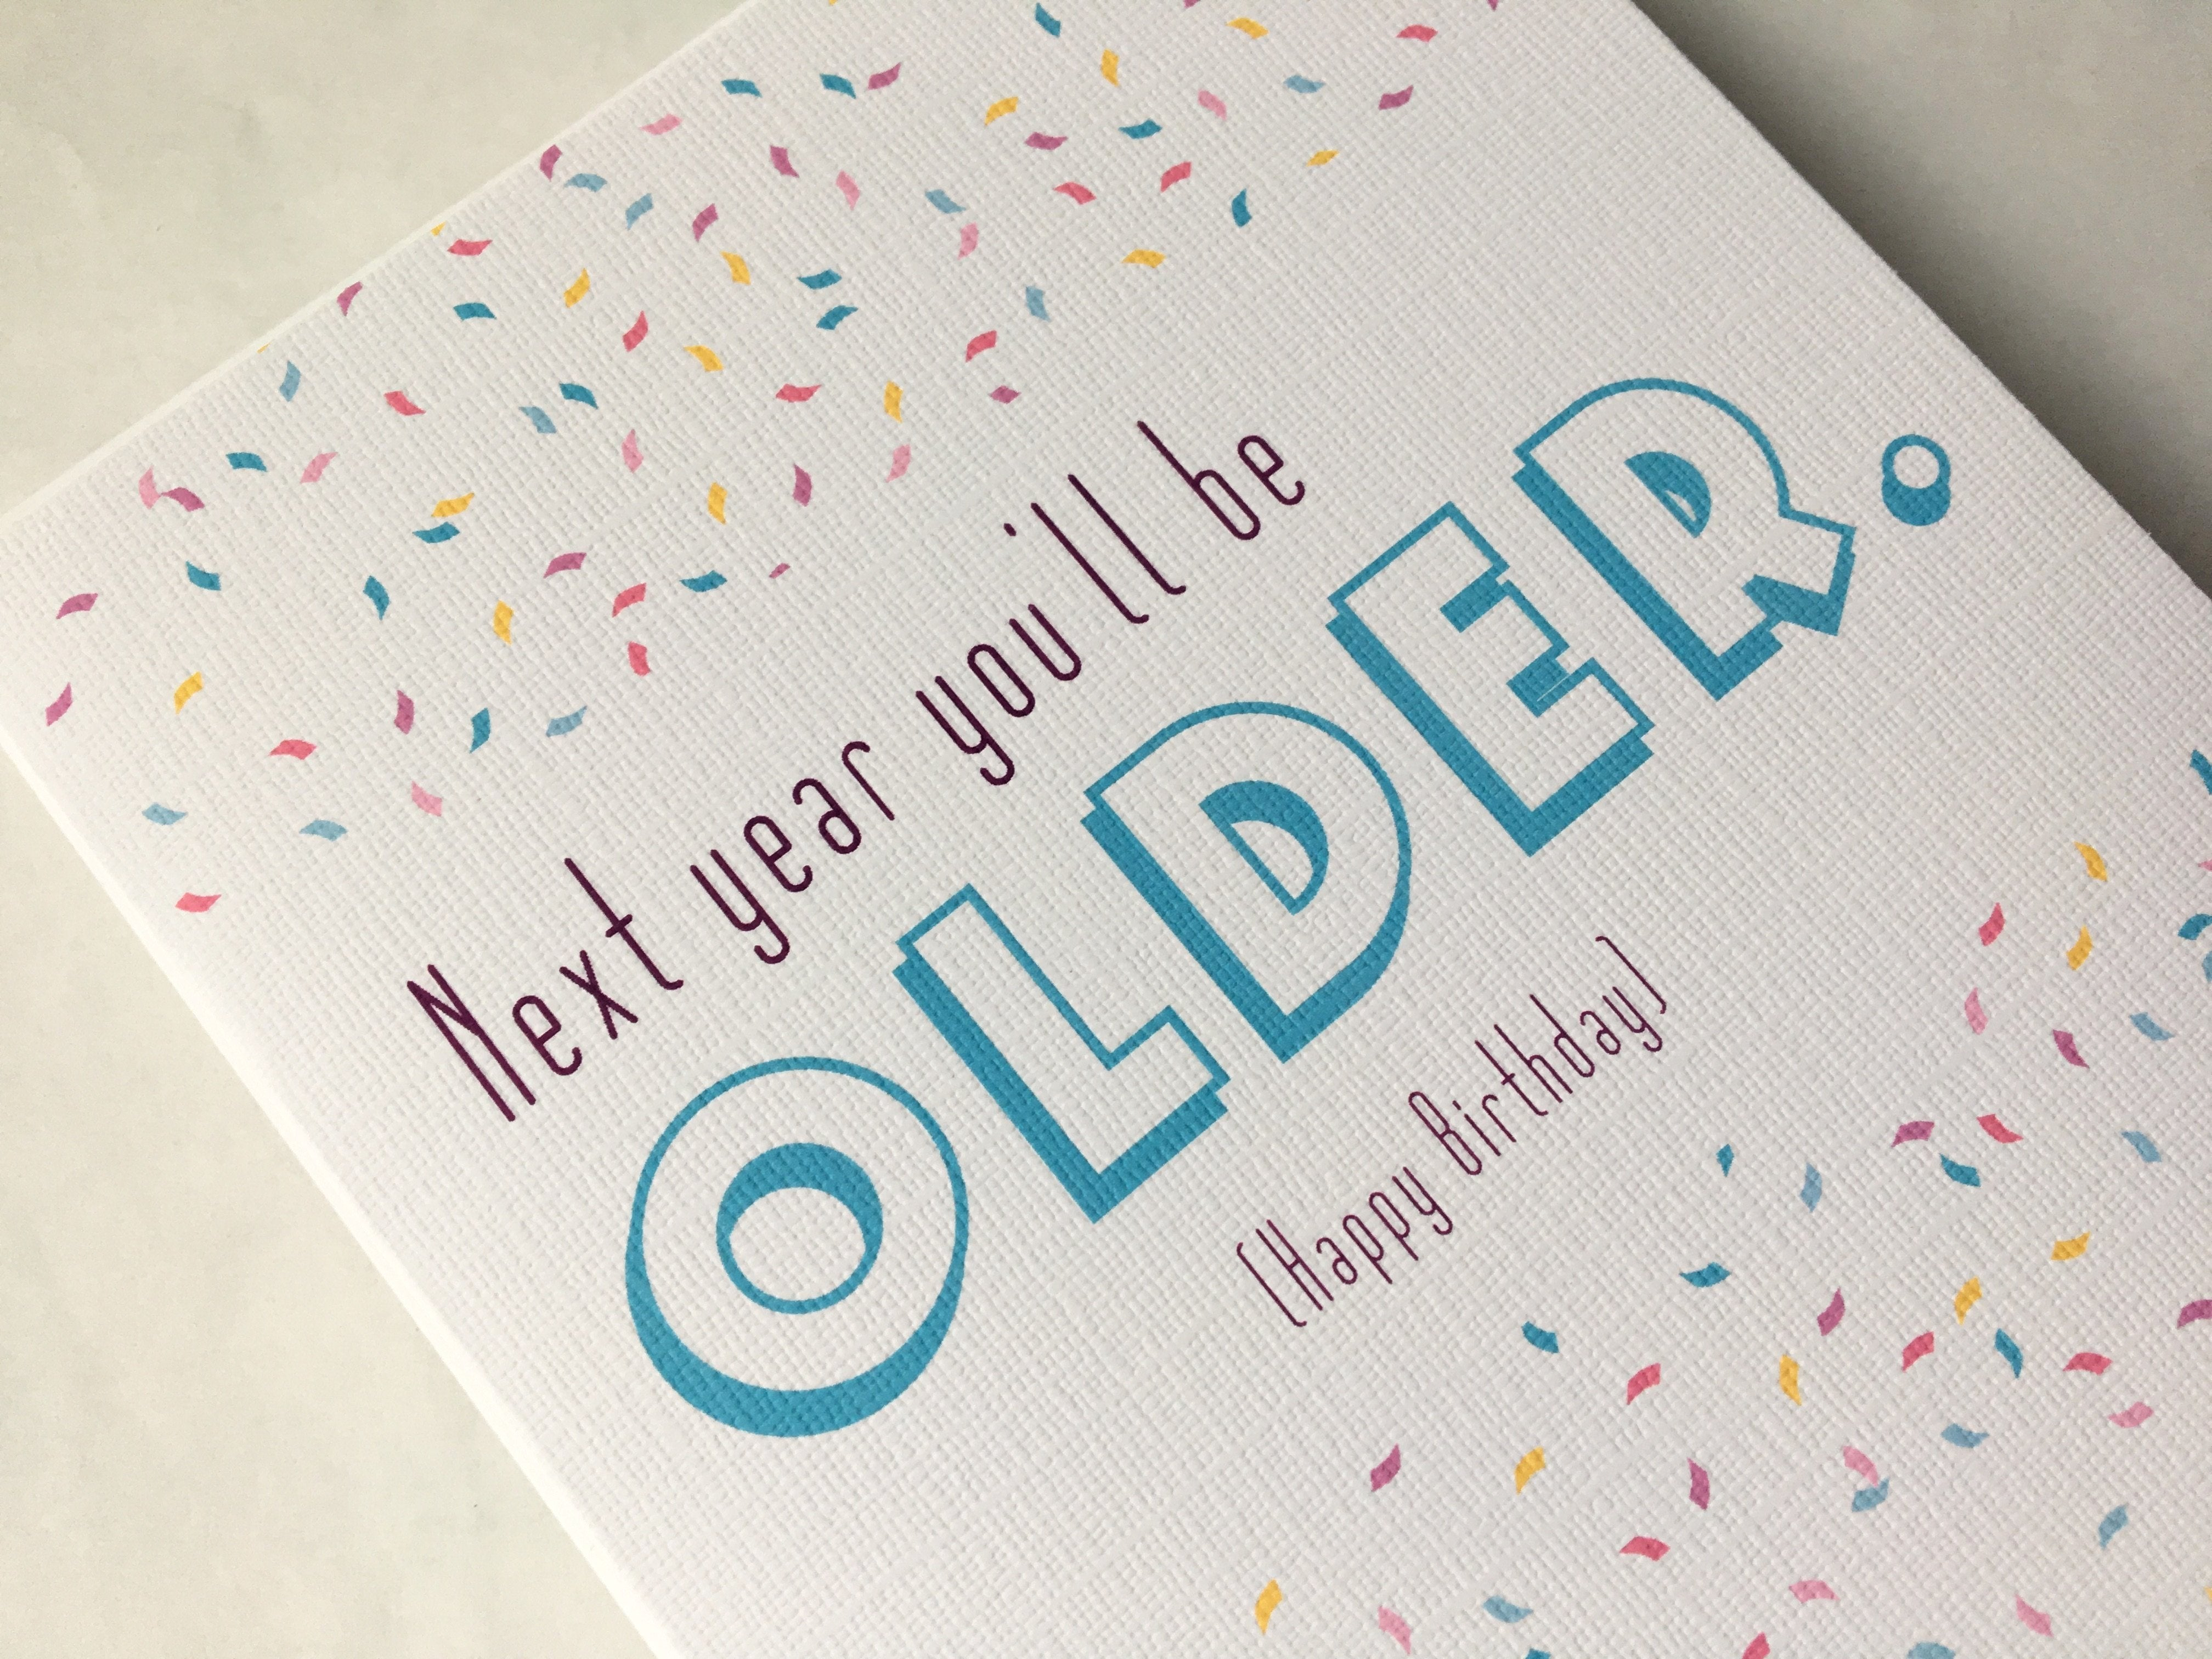 Birthday Card | Funny Birthday Card | Humorous Card | Tongue In Cheek | Snarky Birthday Card | Funny Greeting Cards | Sarcastic Card